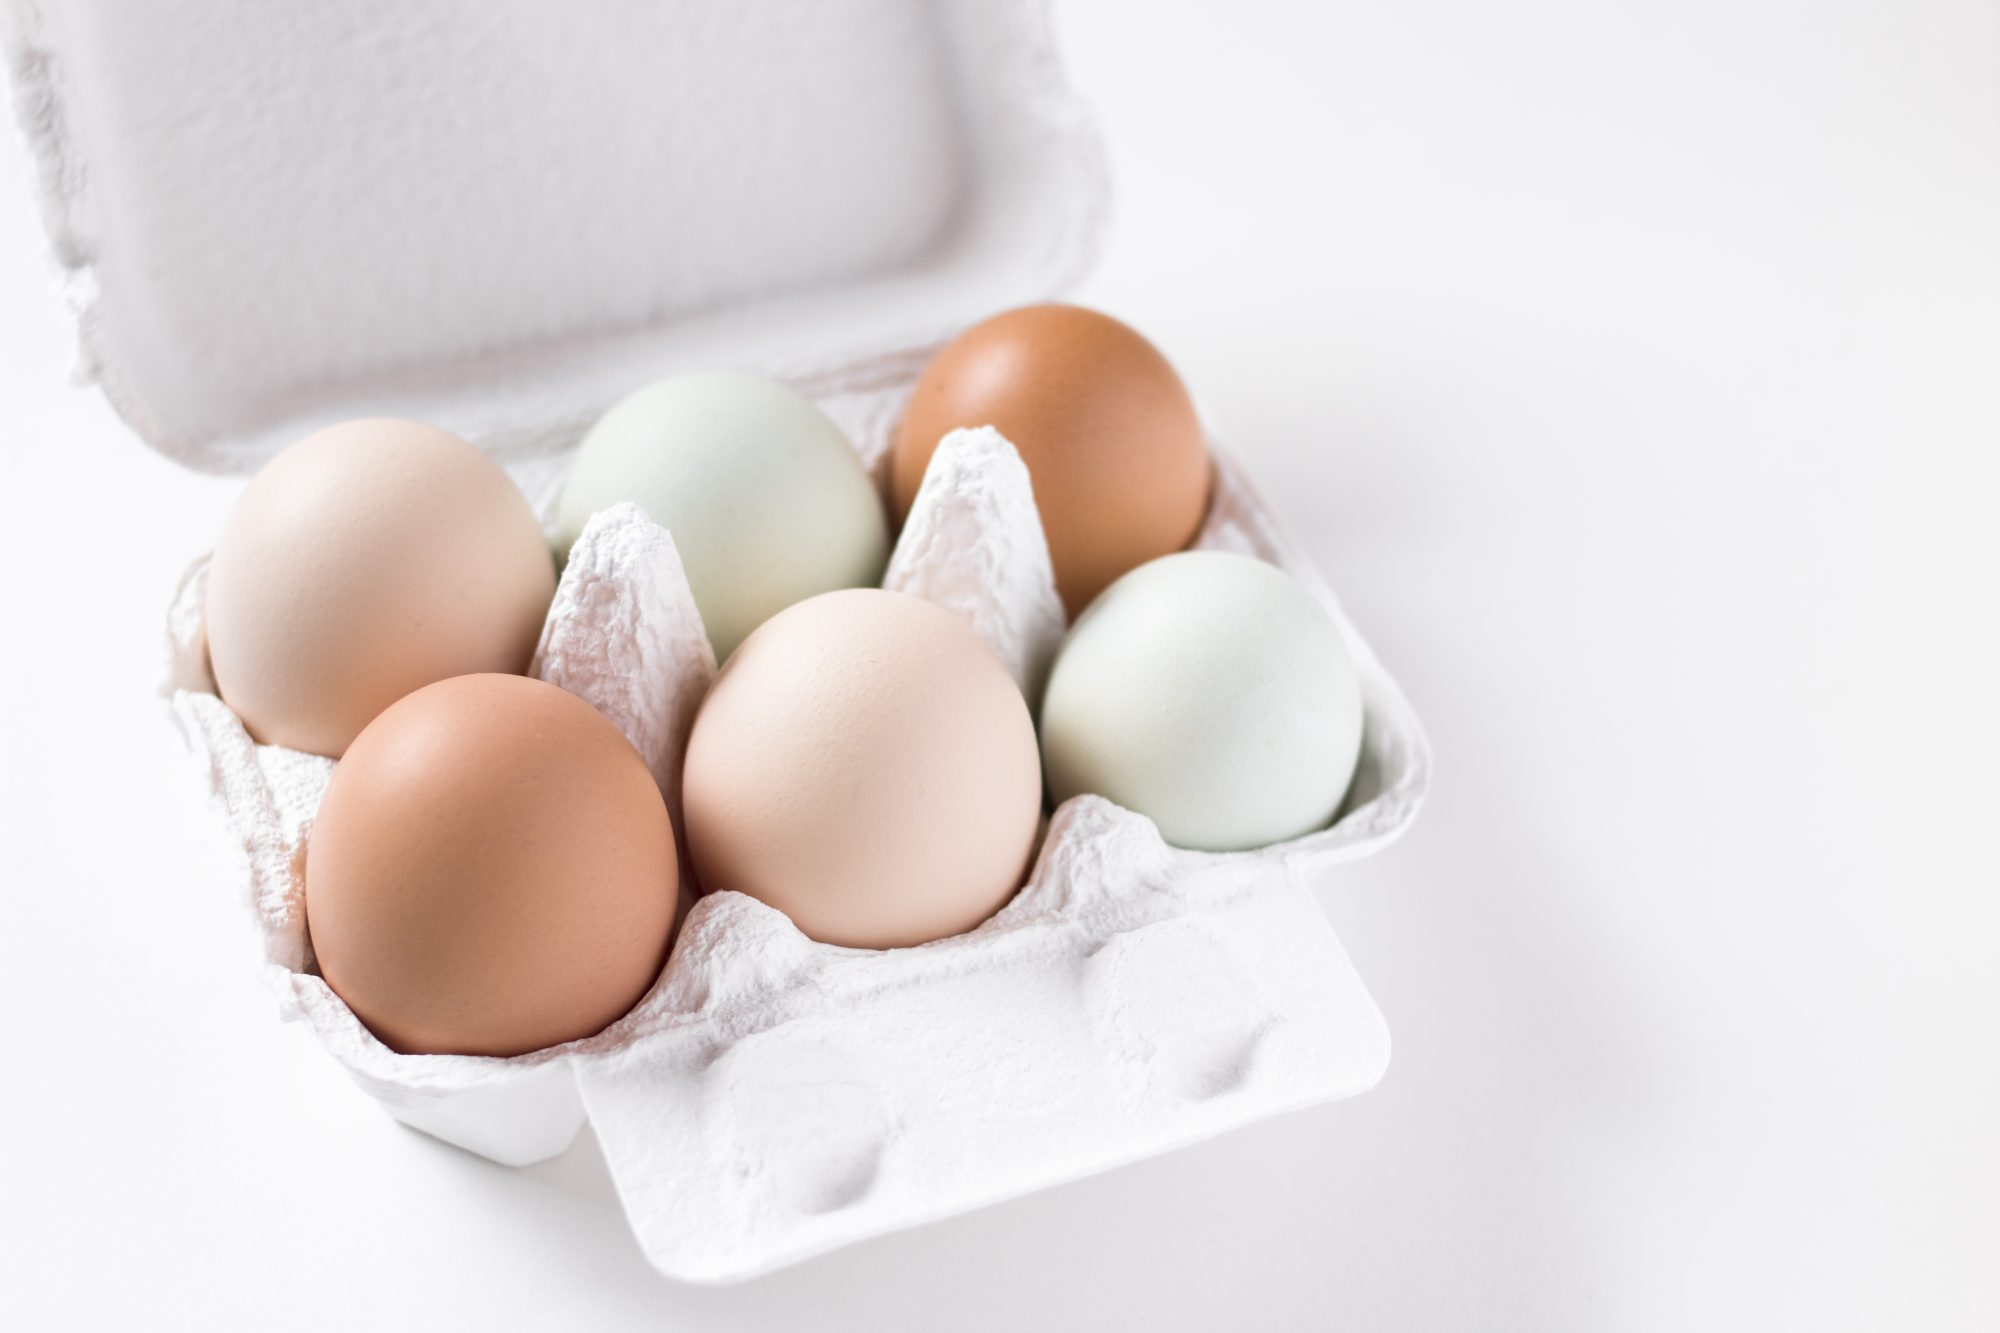 Eggs in Carton